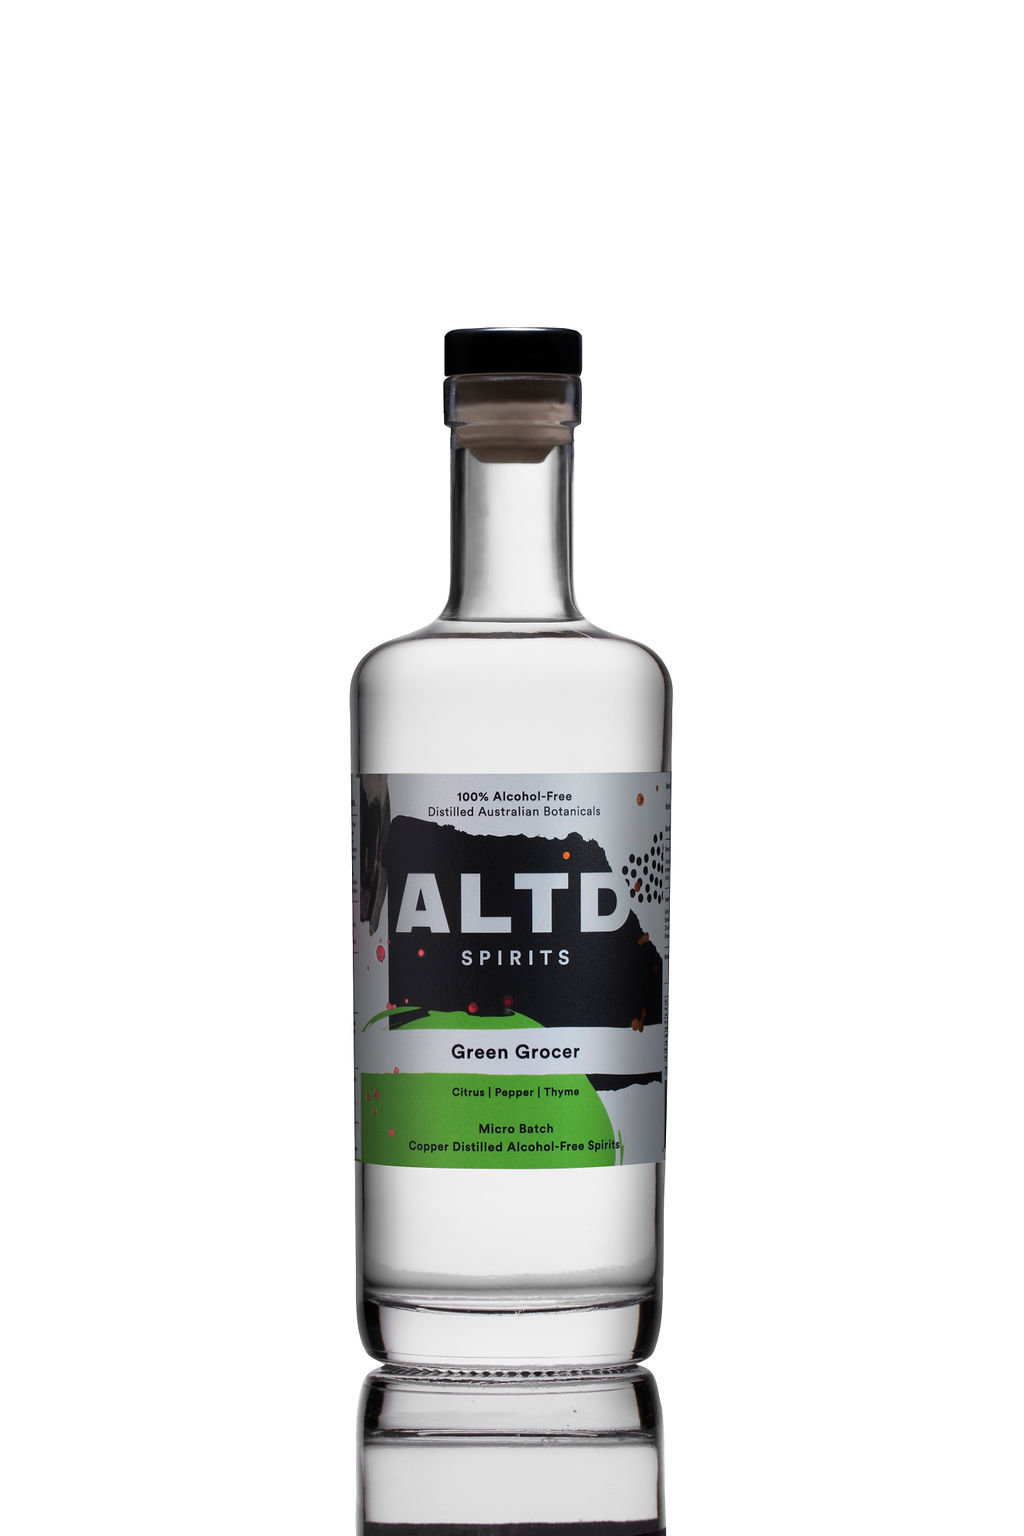 Emma Duzhnikov bottle photography product photographer ALTD spirits Australia GreenGrocer